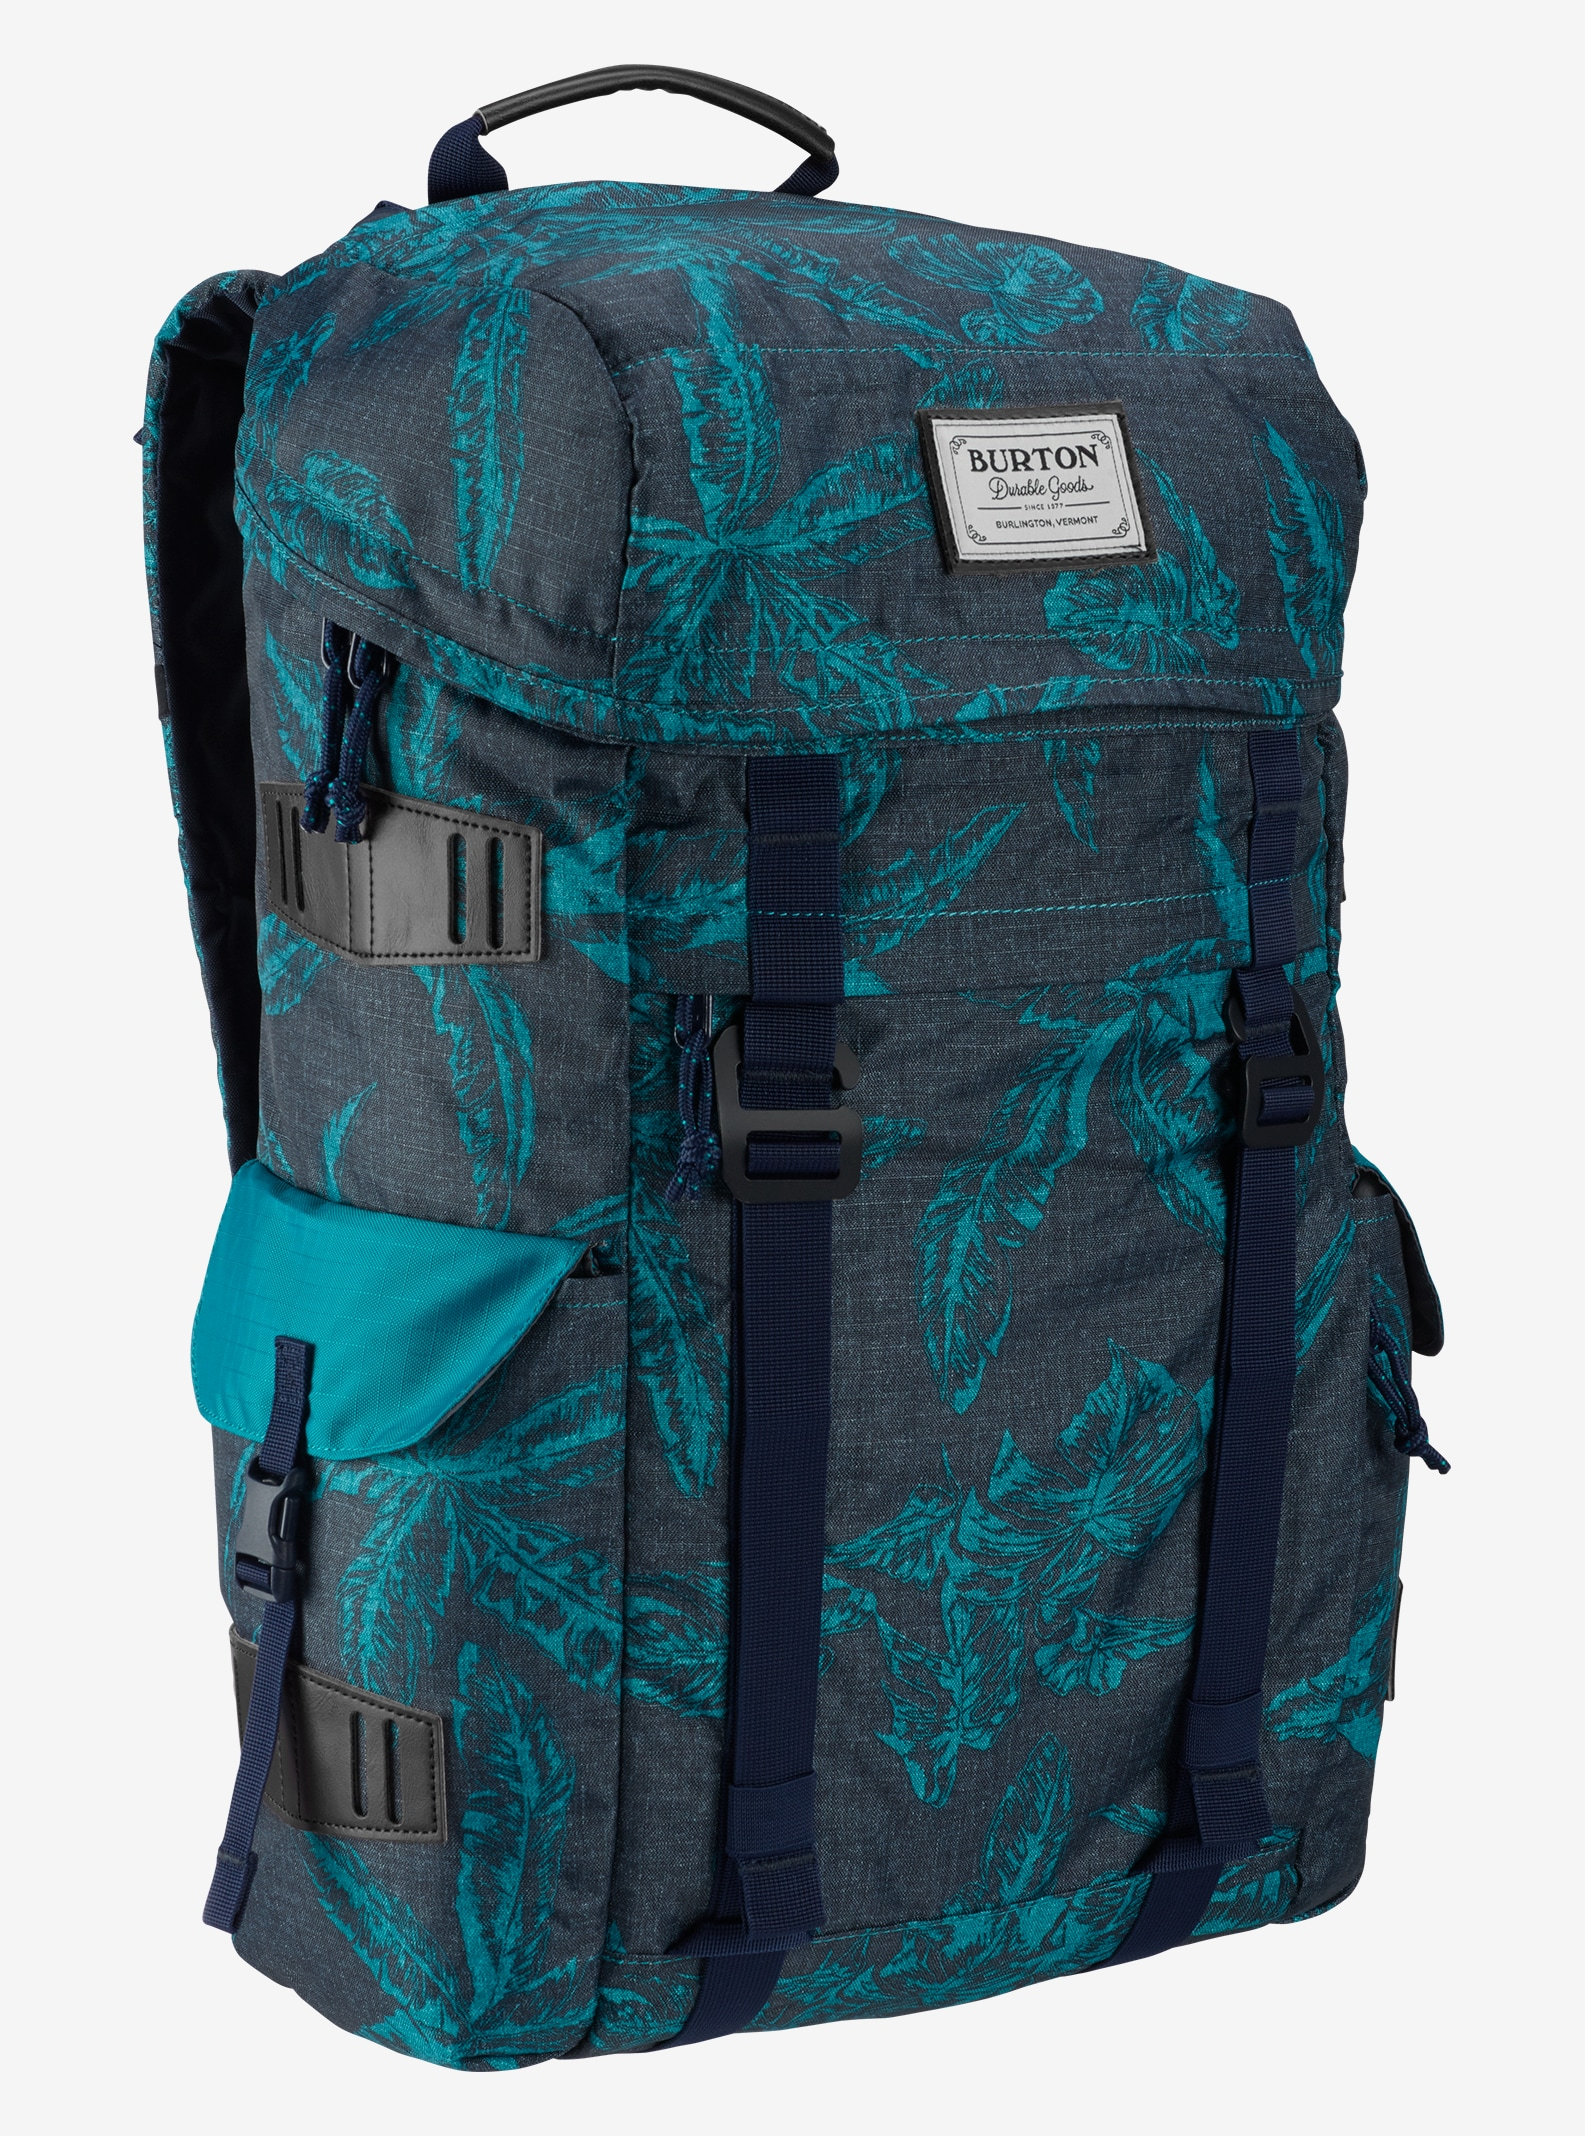 Burton Annex Backpack shown in Tropical Print